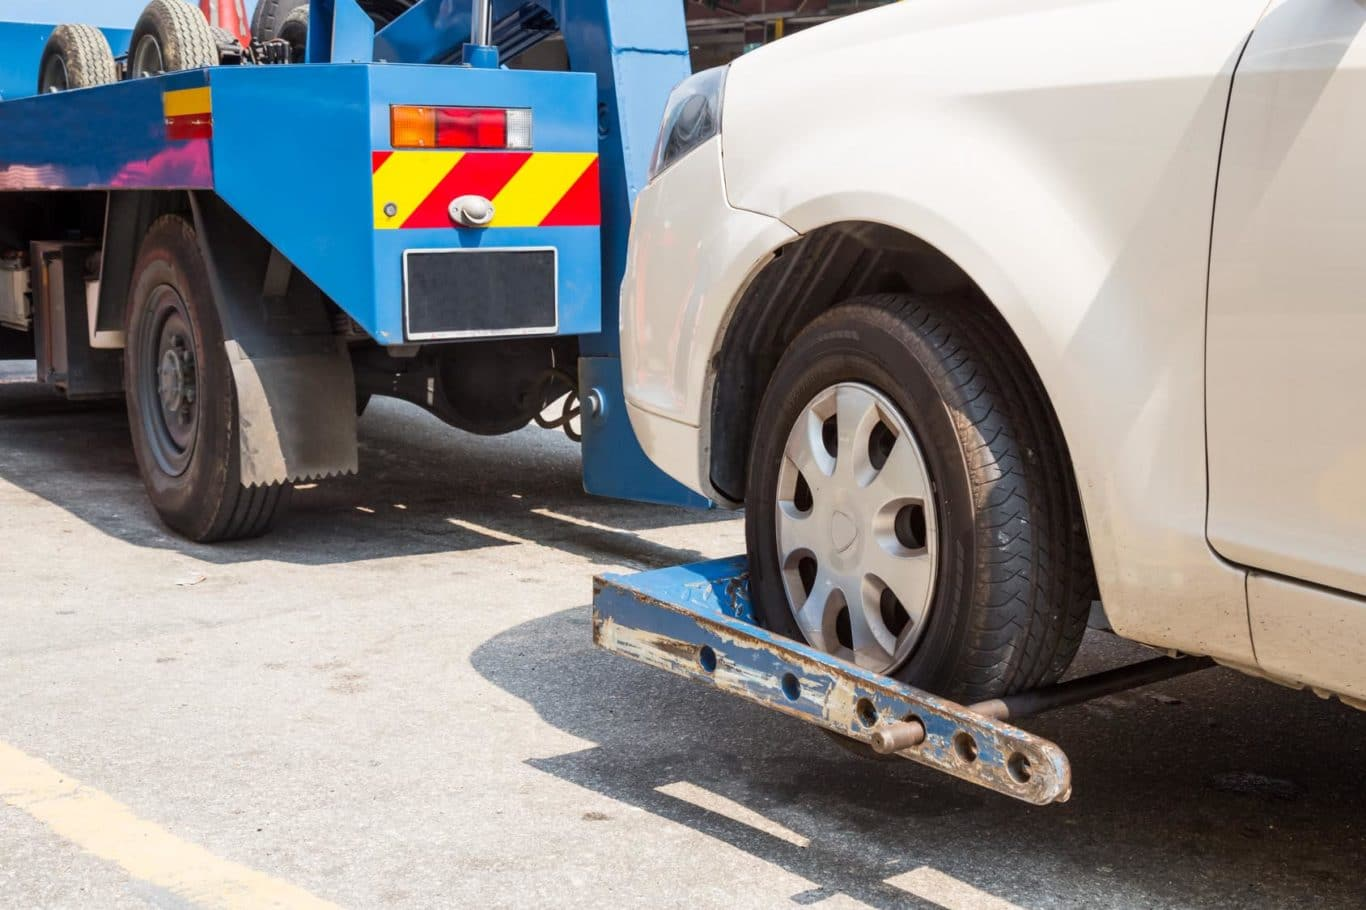 Blessington expert Roadside Assistance services